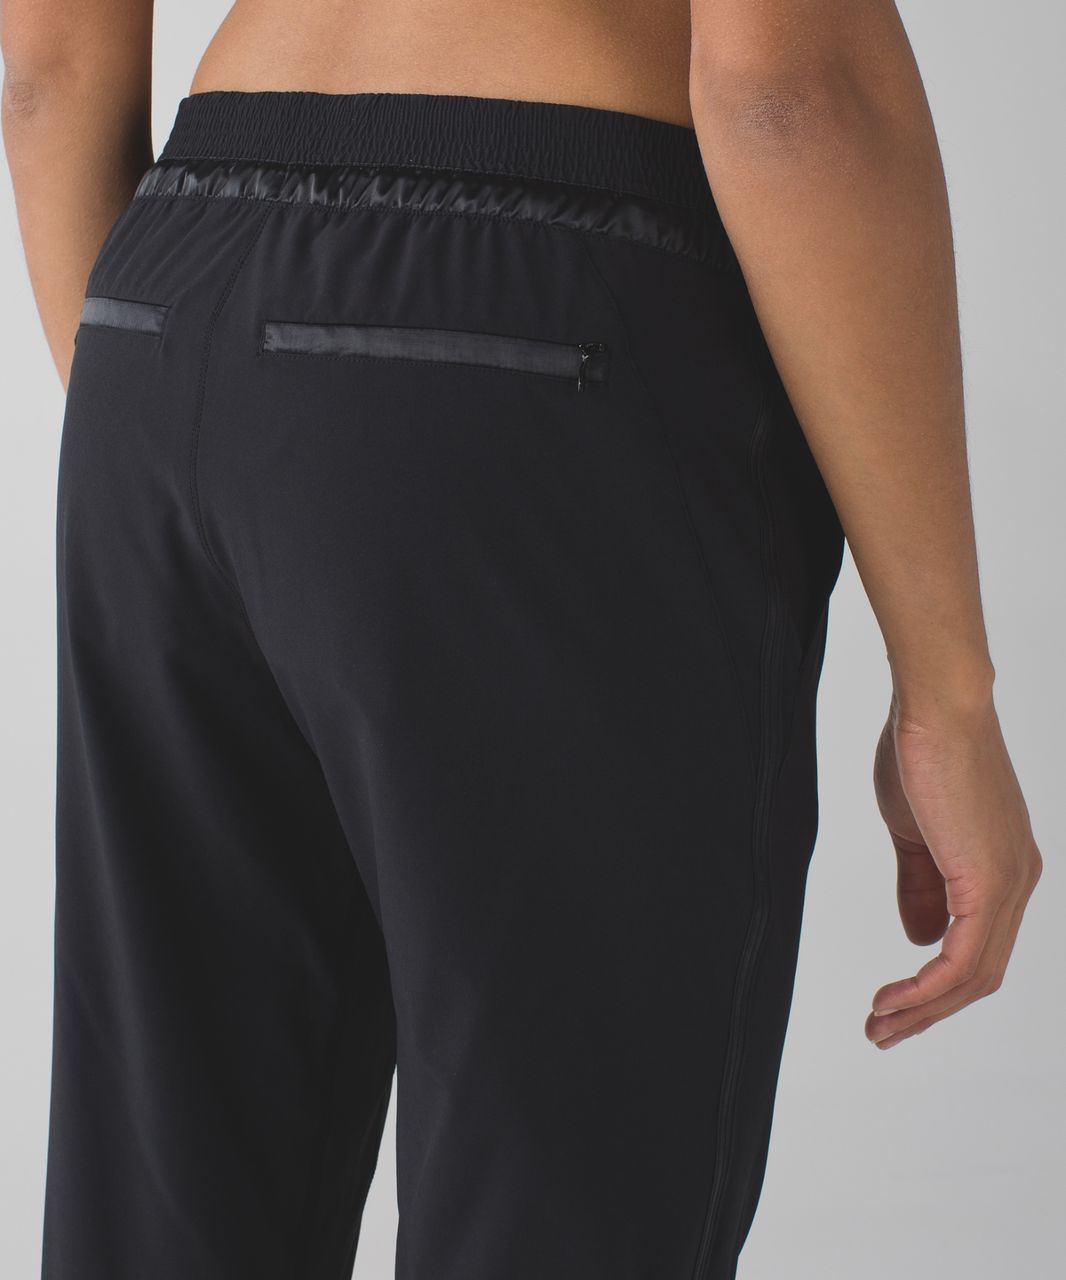 Lululemon &go On The Go Jogger - Black